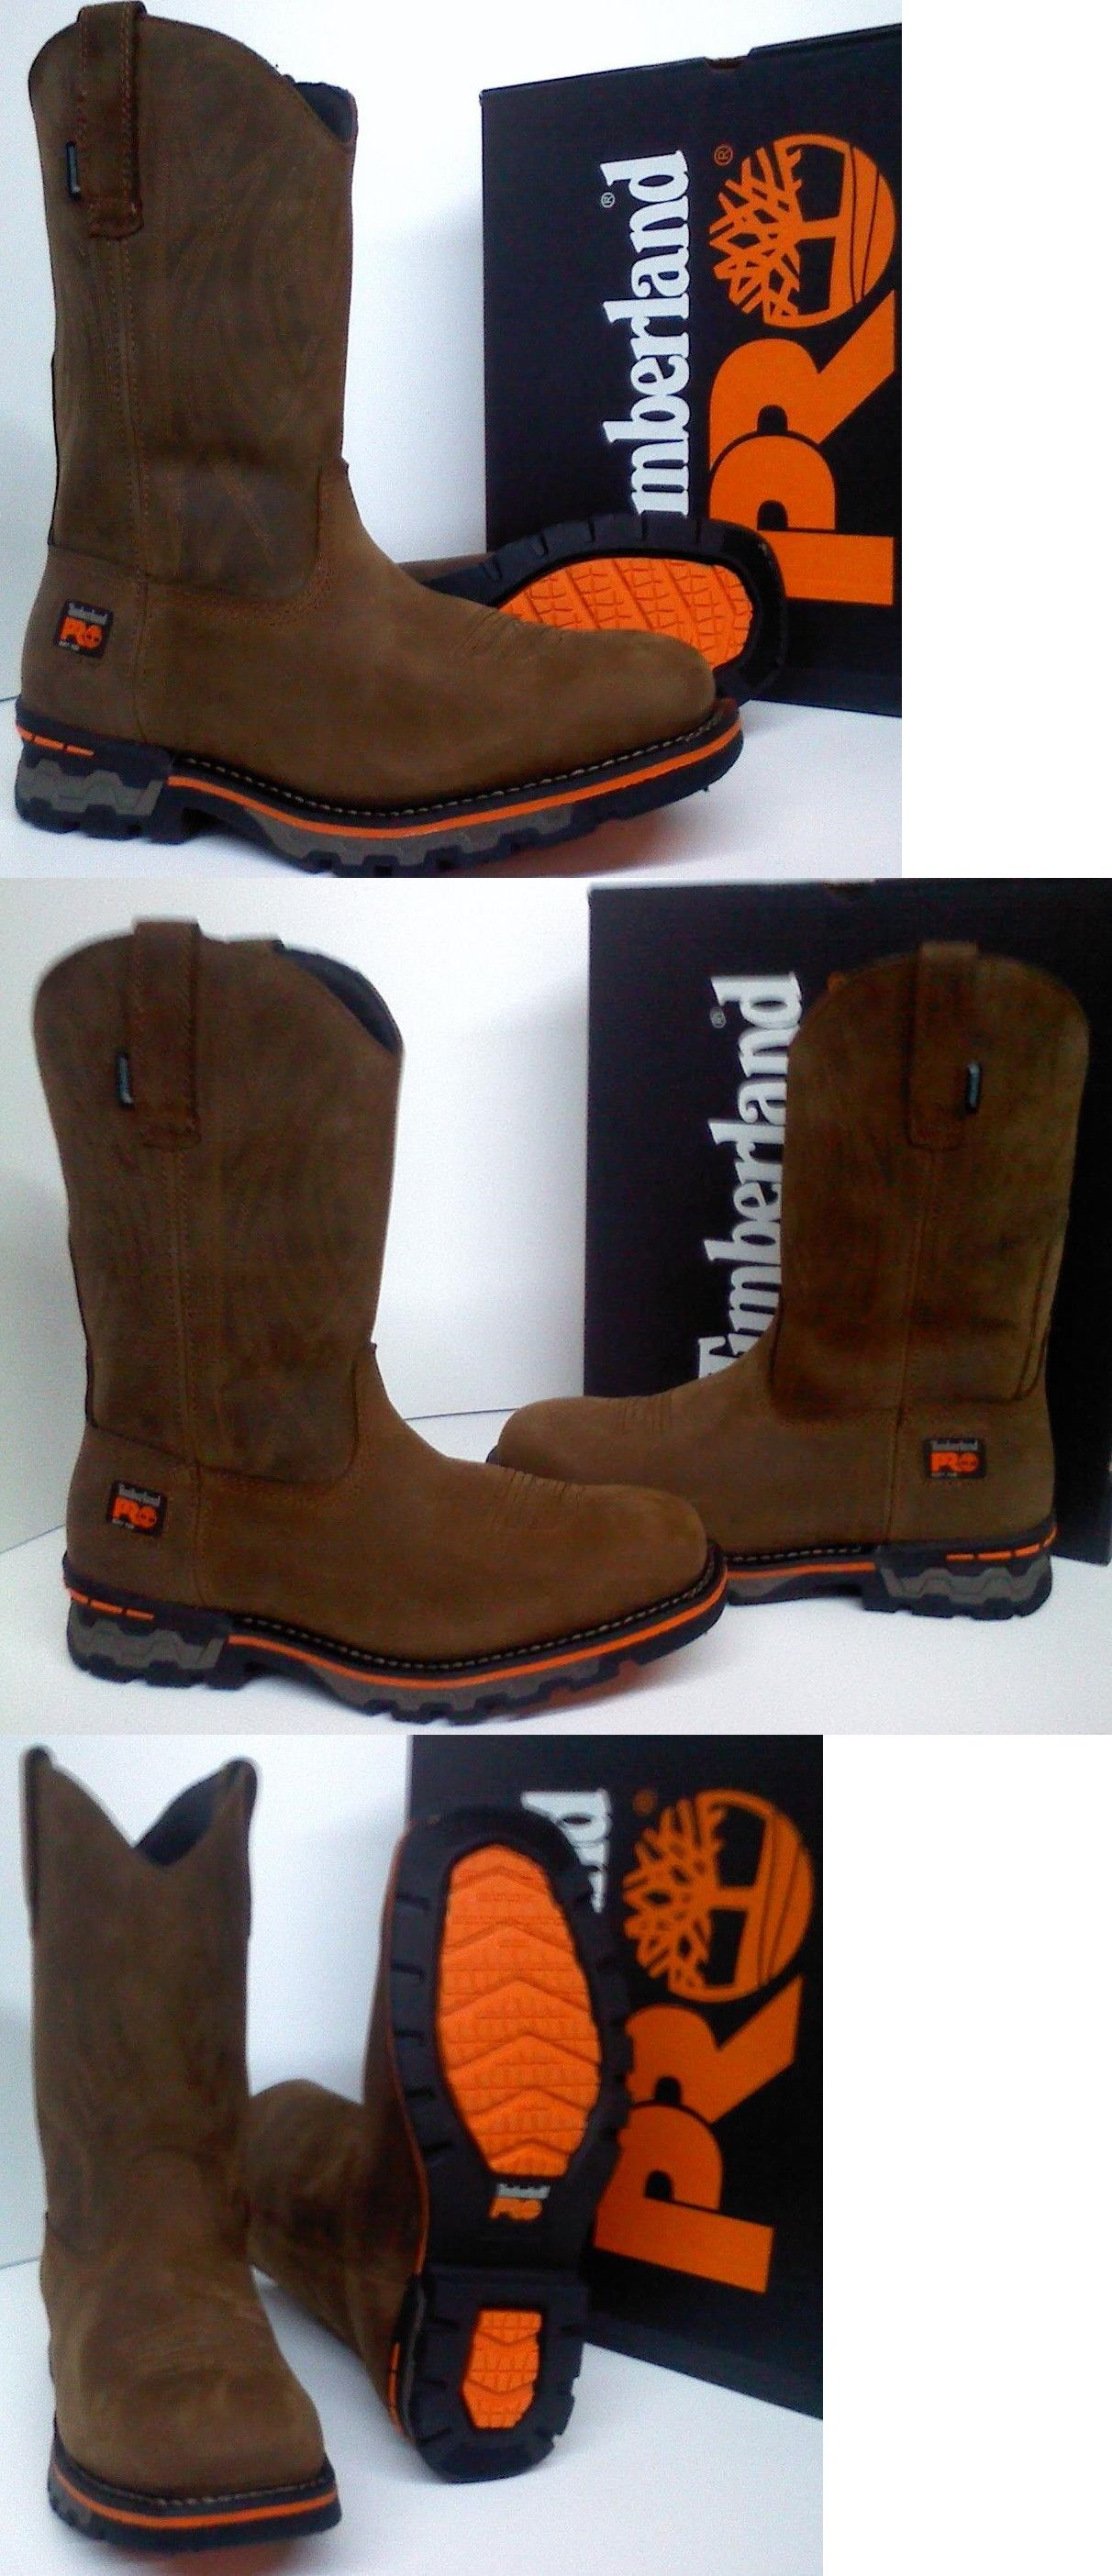 4e07cf9b0bc8 Boots 11498  Timberland Pro Ag Boss Soft Toe Work Boots - Waterproof -  Square Toe